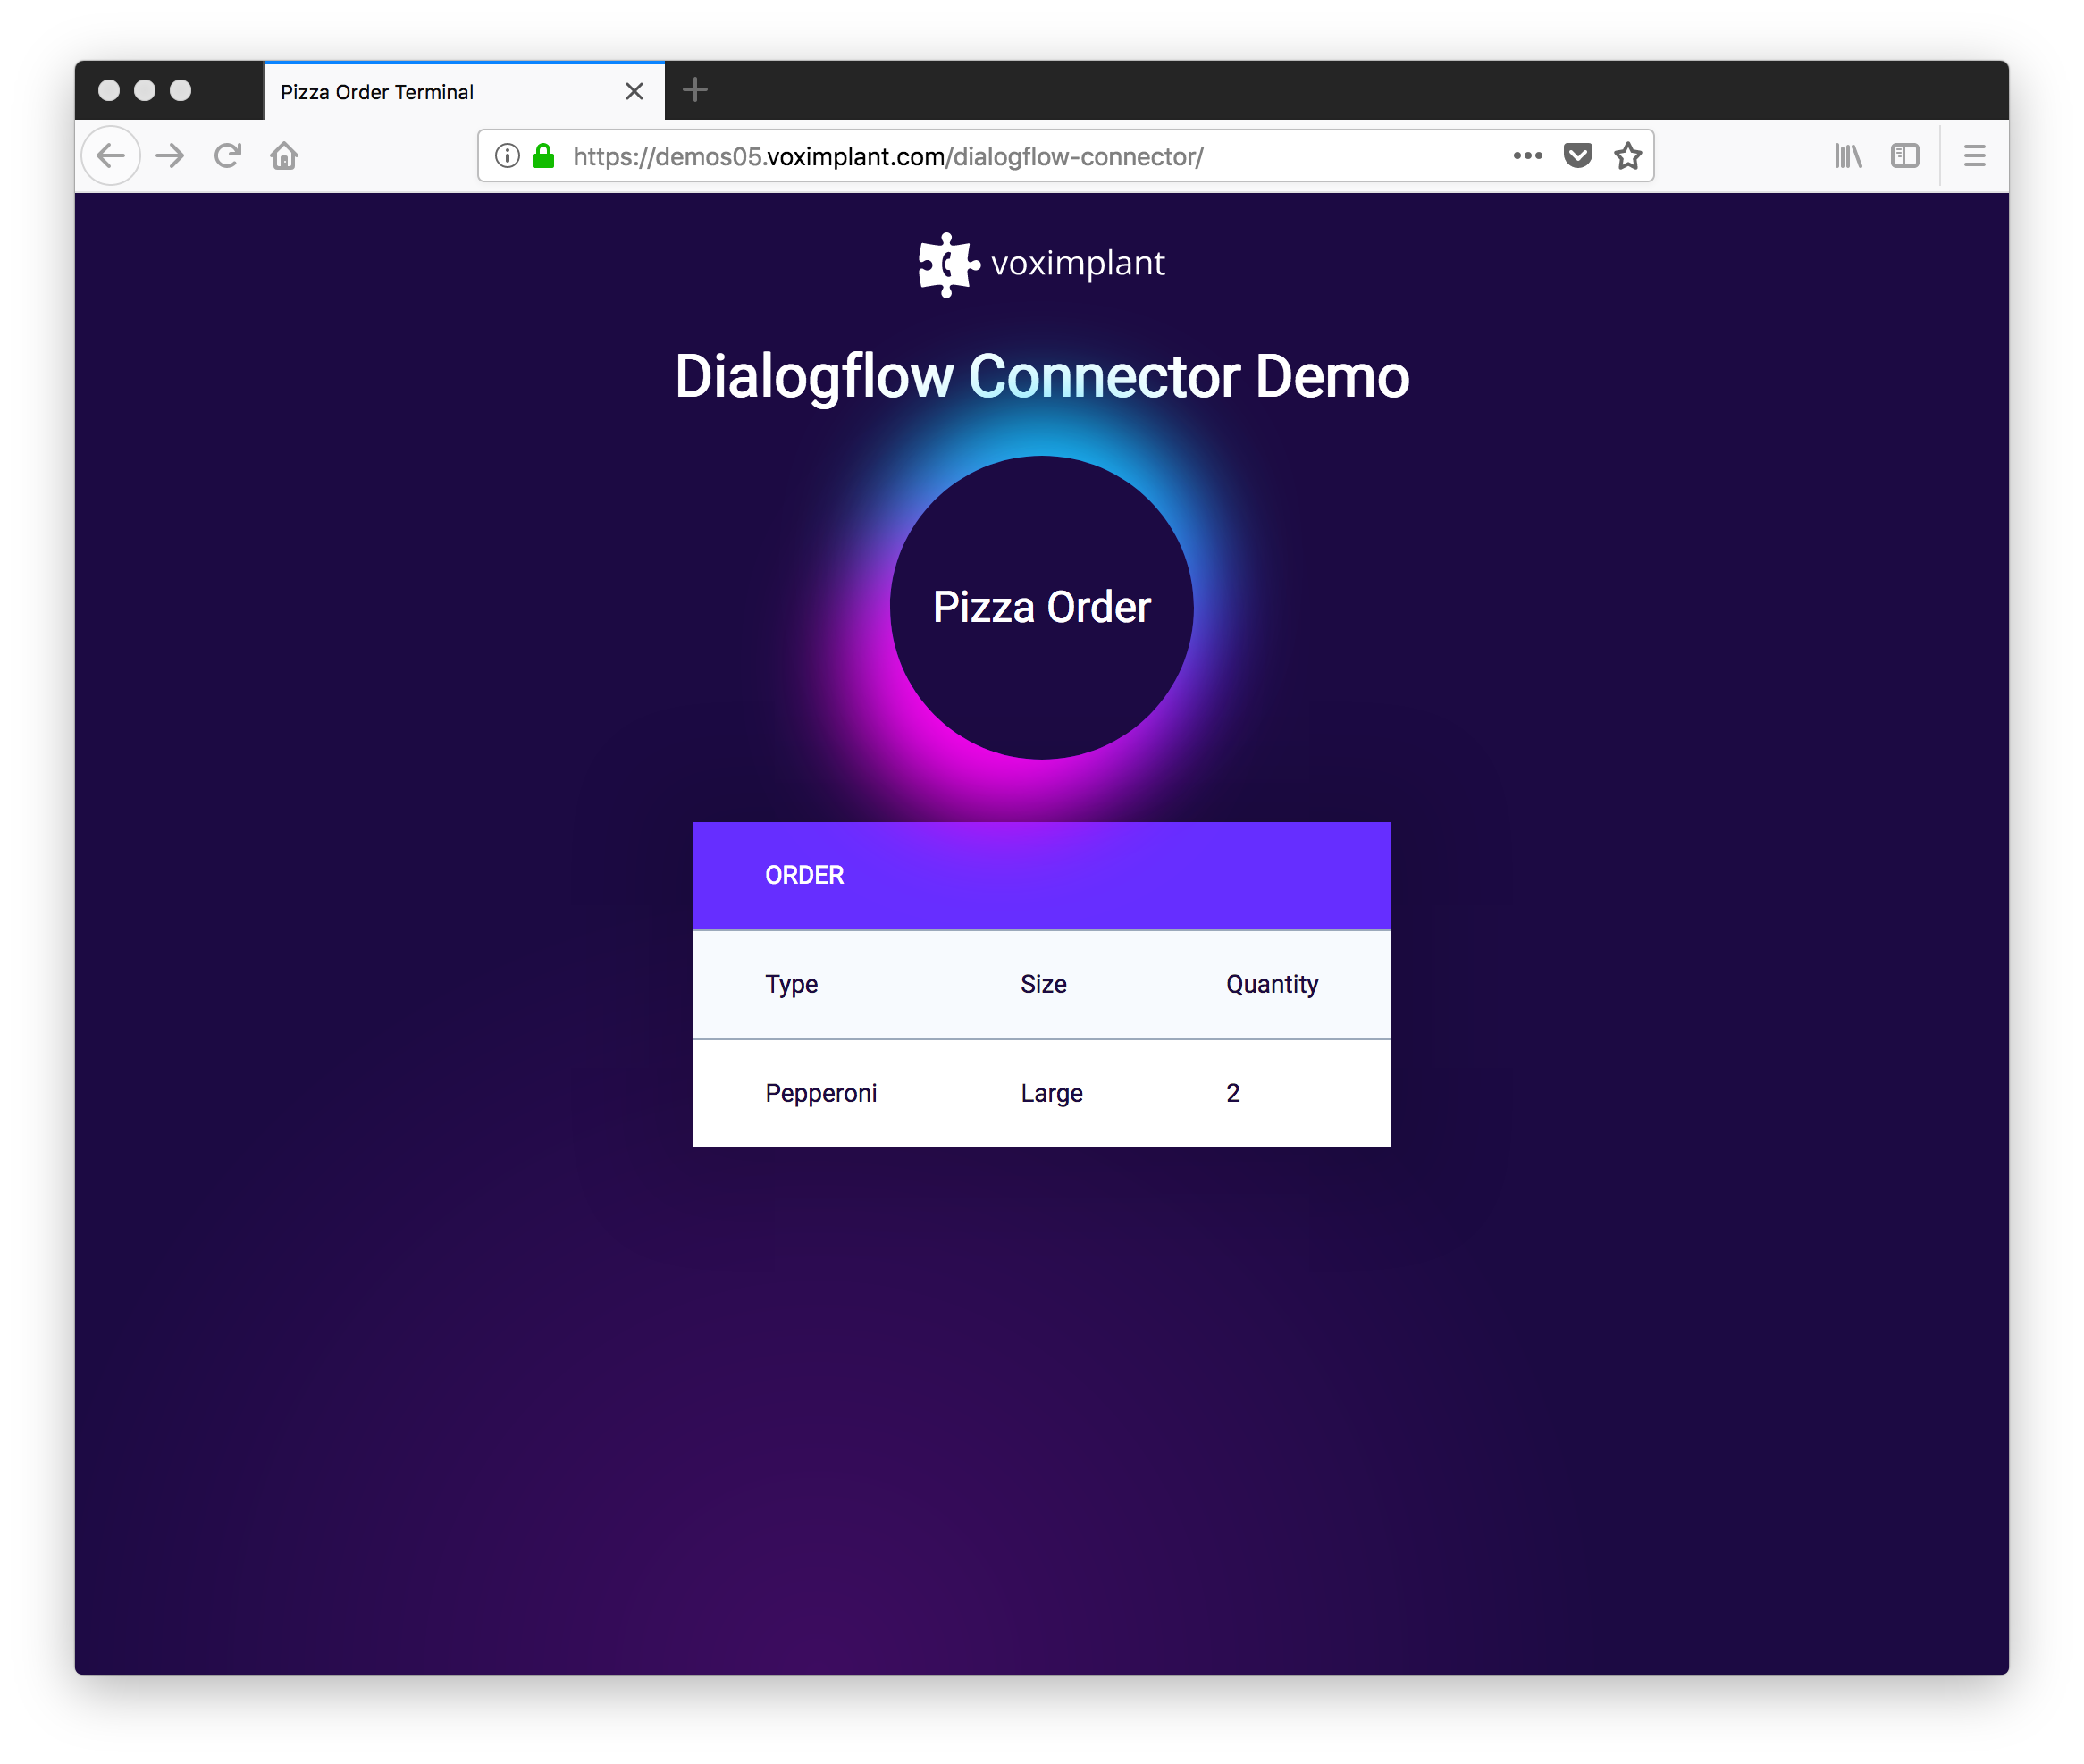 Making IVRs not Suck with Dialogflow